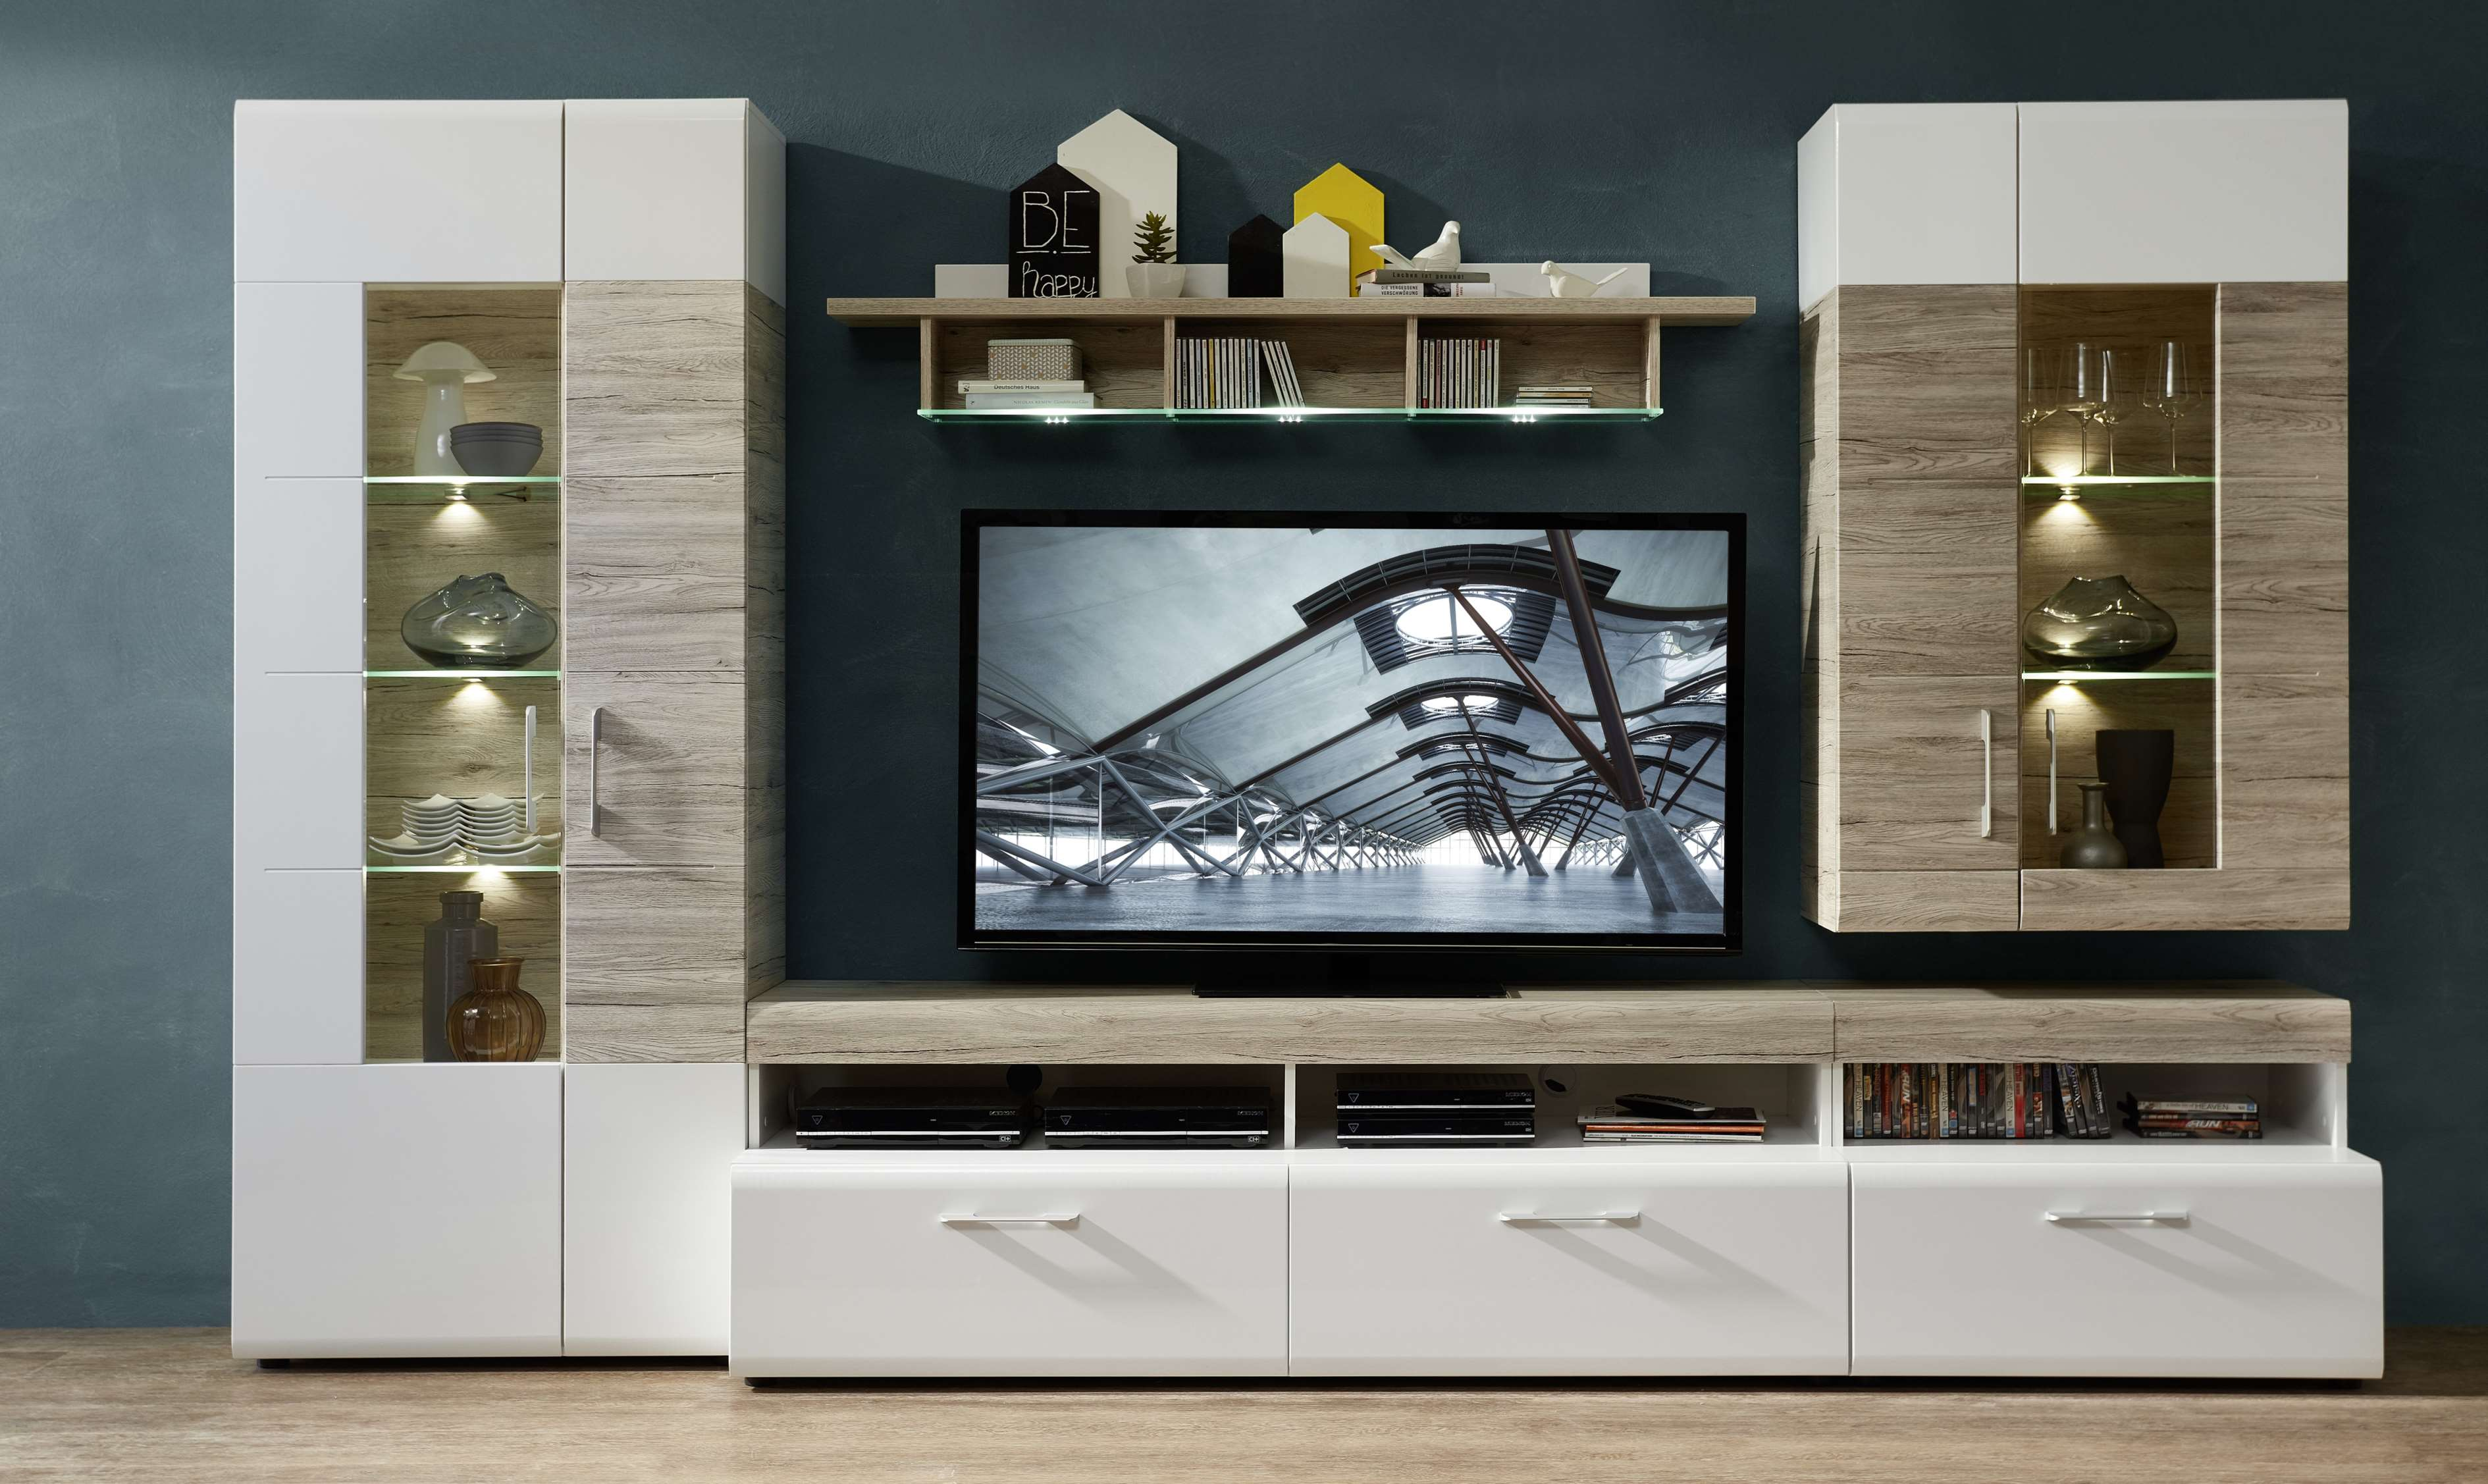 wohnwand spirit wohnzimmer set vitrine h ngeregal wandboard tv regal wei led ebay. Black Bedroom Furniture Sets. Home Design Ideas